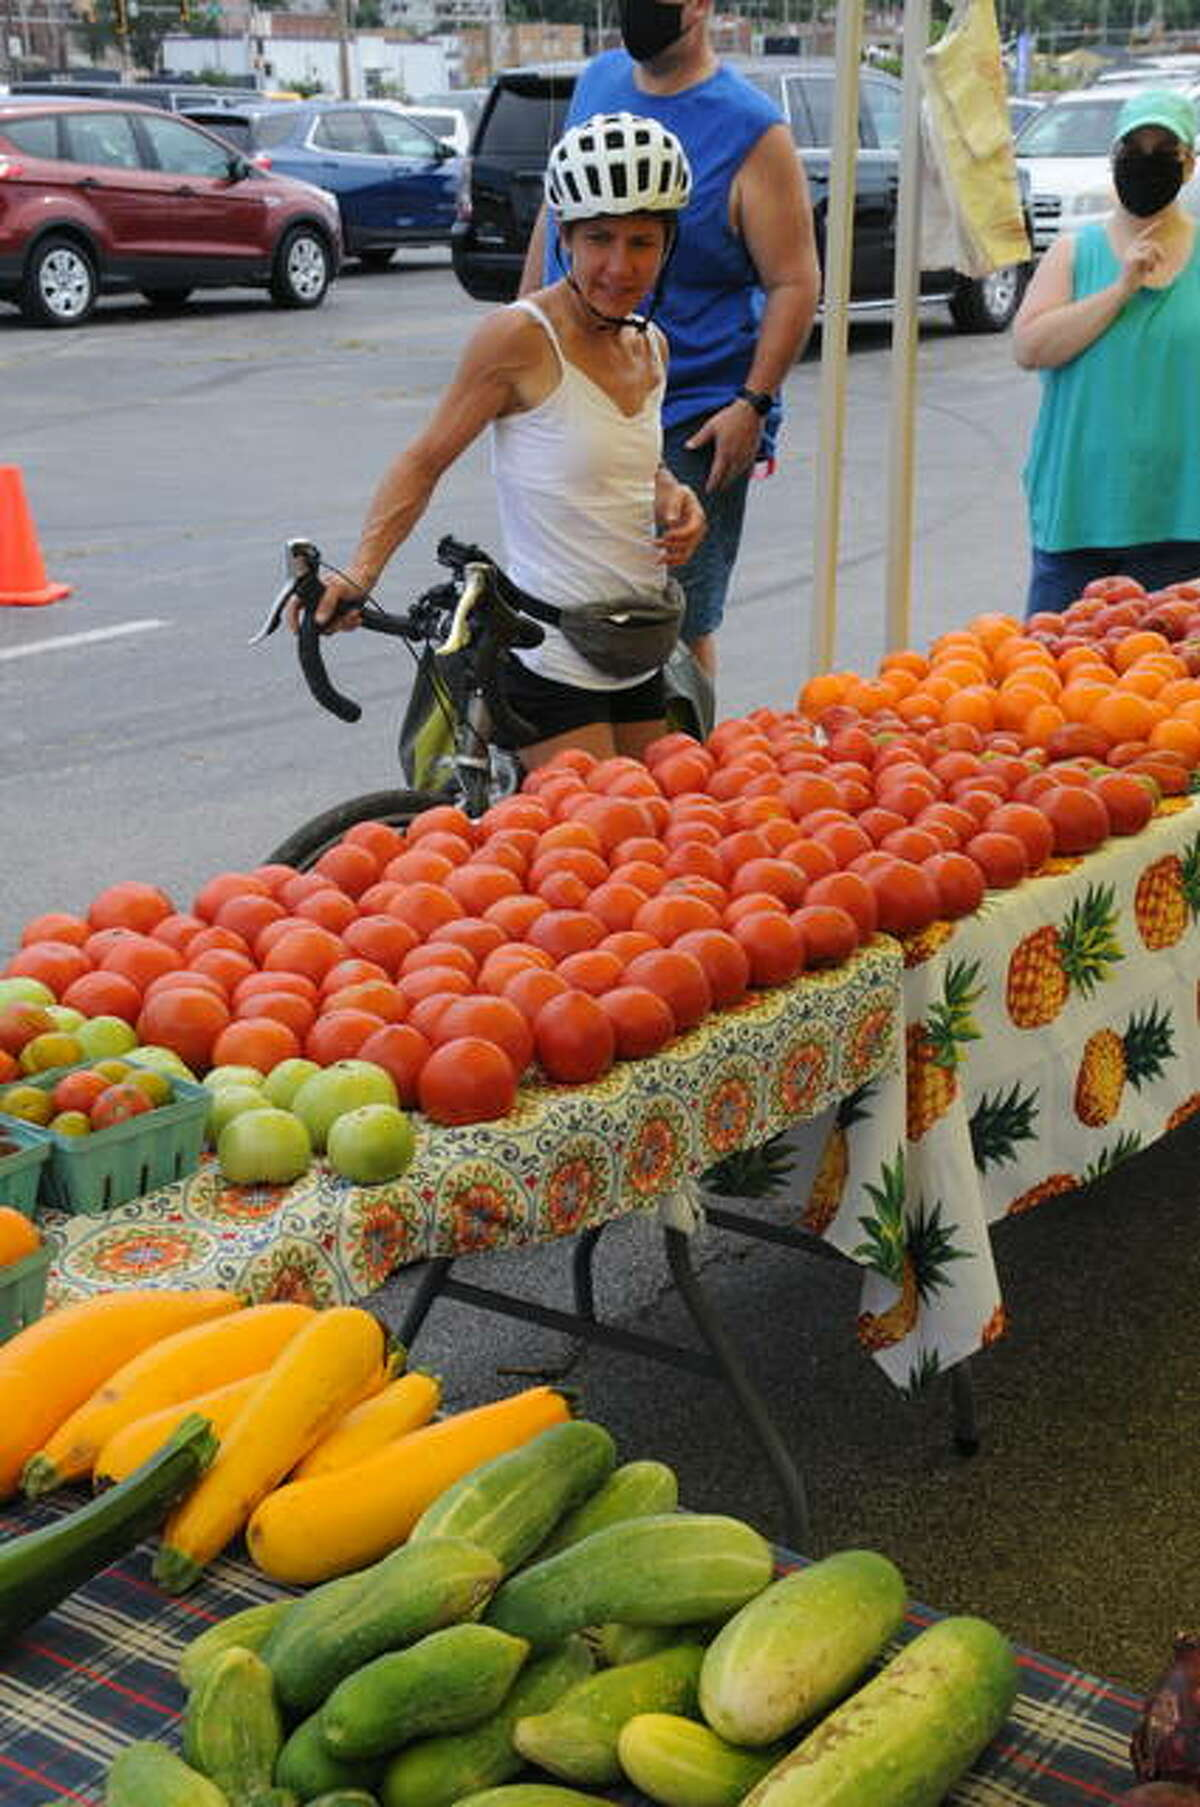 Cara Spencer of St. Louis looks at the wide variety of fresh produce in downtown Alton on Saturday.